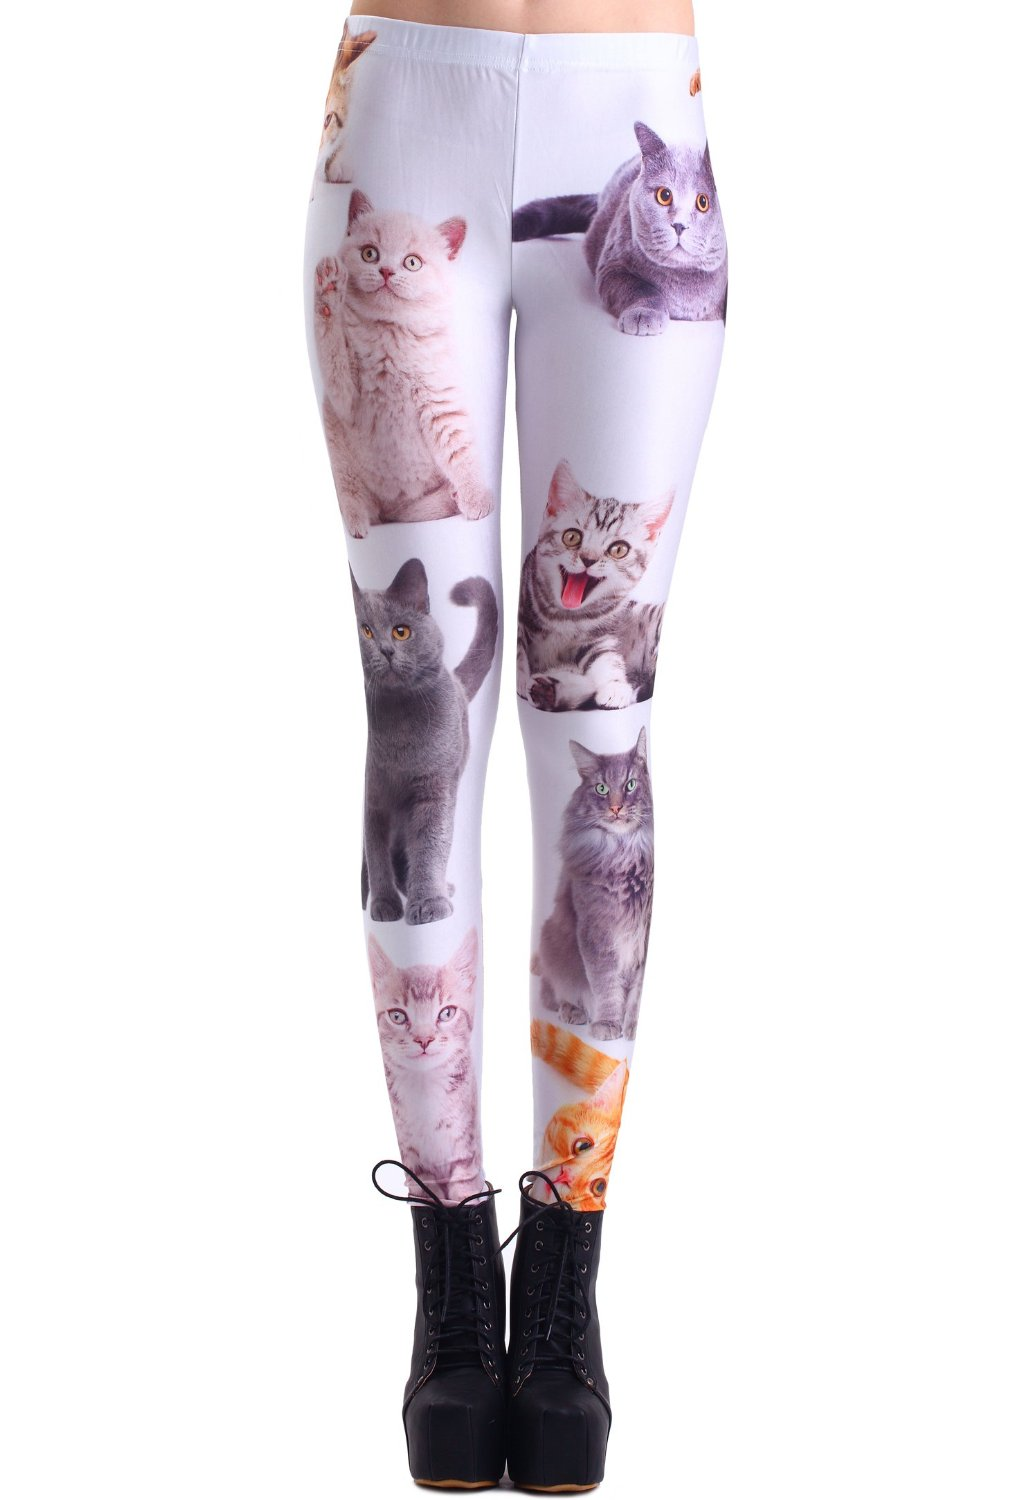 Can't pick a favorite cat? You don't have to with these leggings ($22, originally $25).